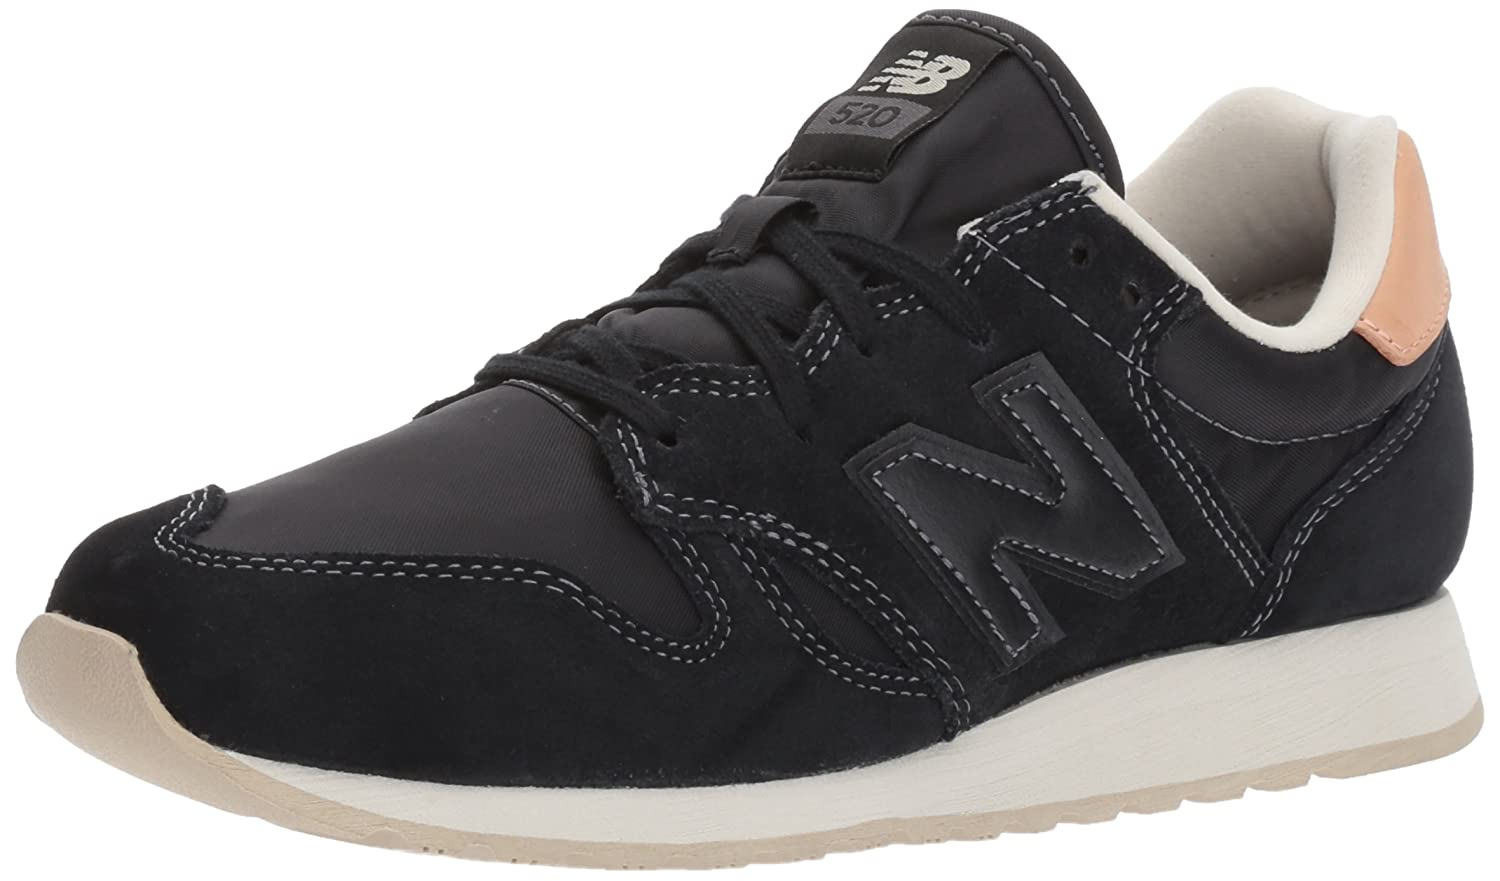 New Balance Women s Wl520 Track   Field Shoes  Amazon.co.uk  Shoes   Bags 8e6eb0967